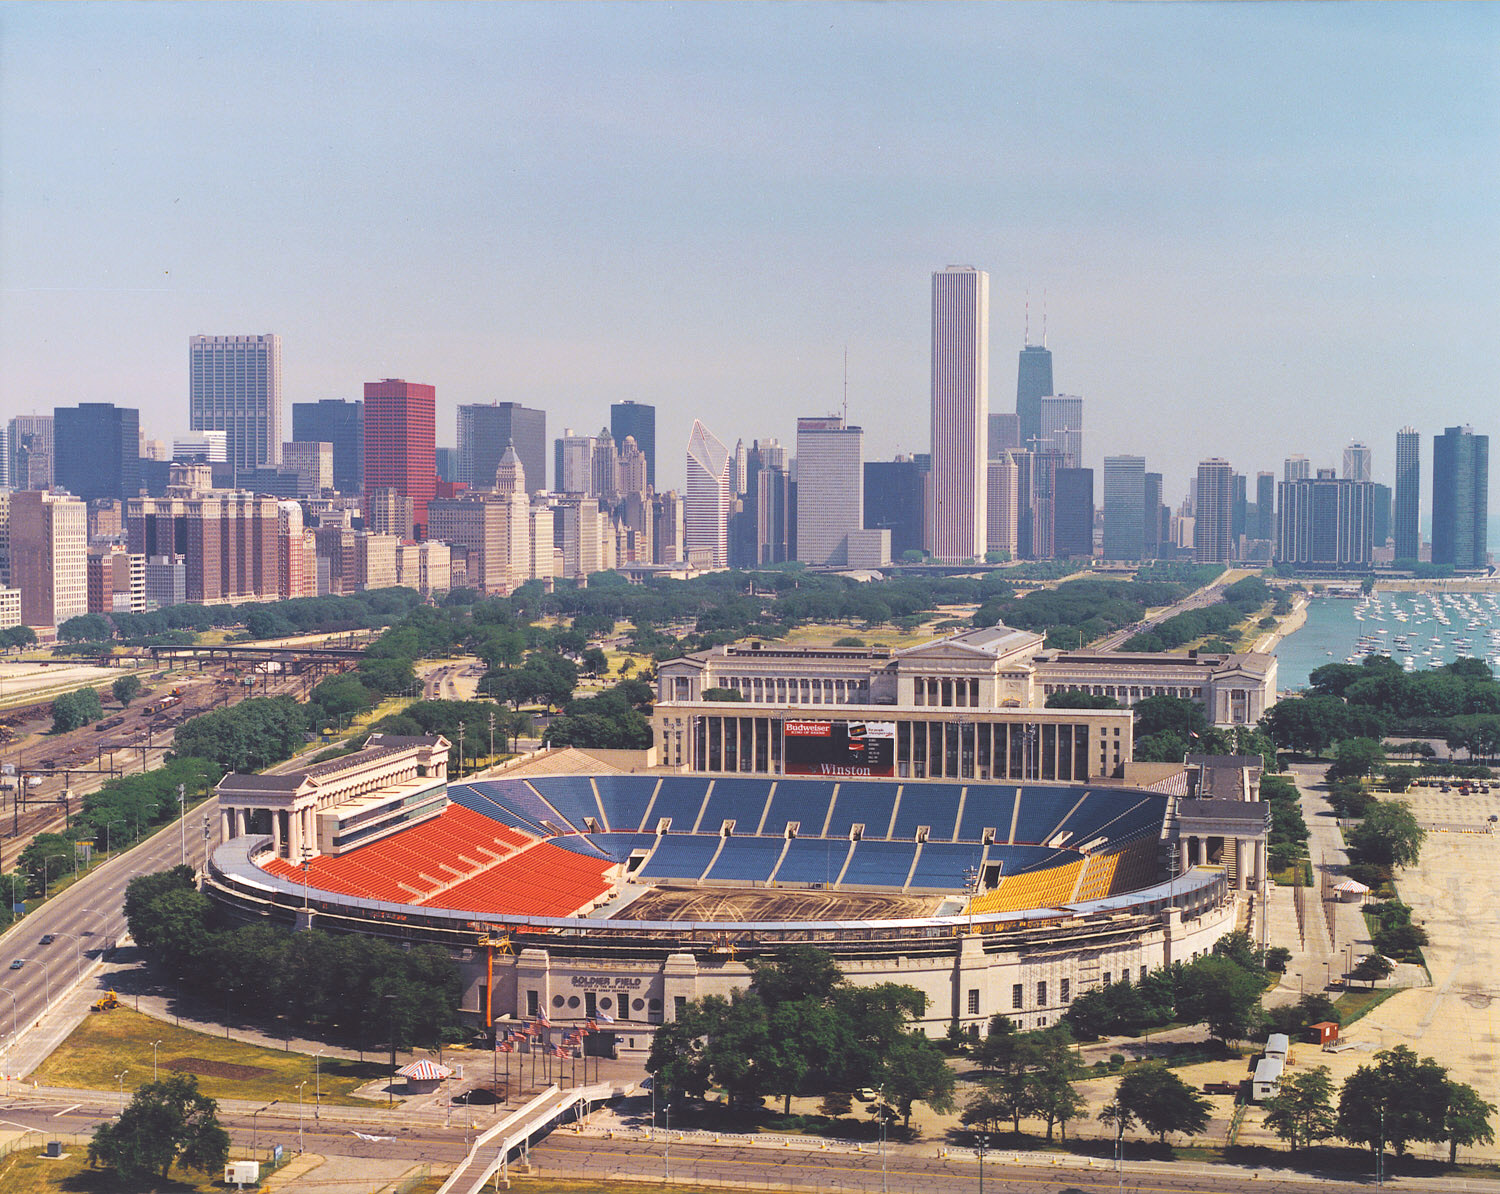 Soldier_Field_Chicago_aerial_view.jpg